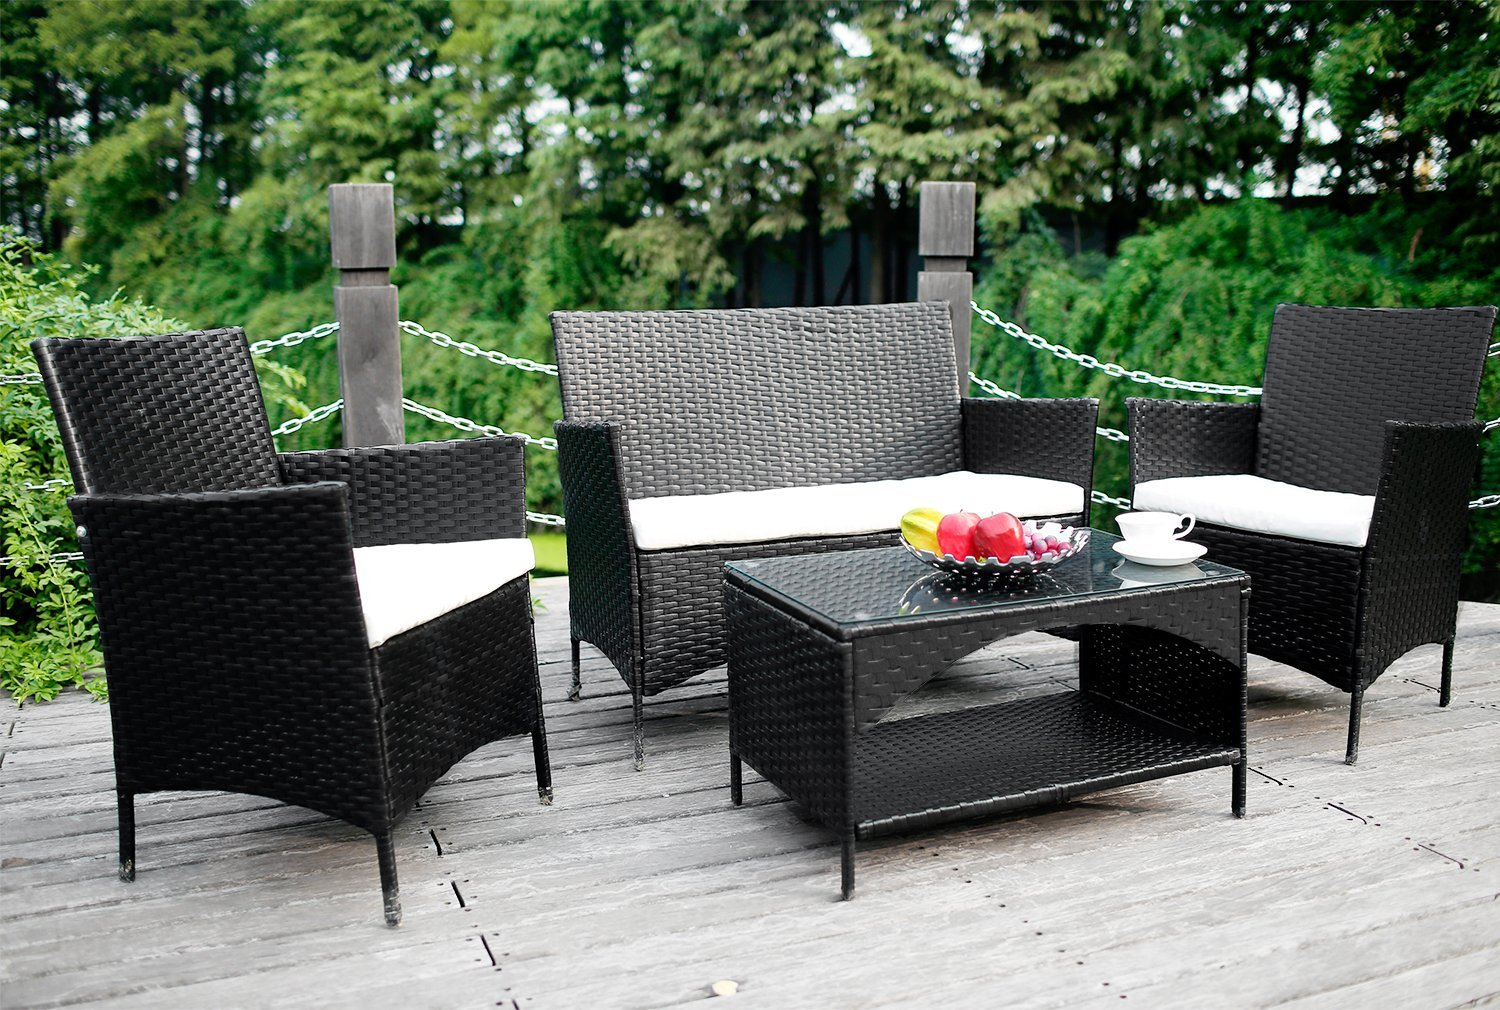 Cool Review Merax 4 Piece Outdoor Rattan Patio Furniture Set Home Interior And Landscaping Ferensignezvosmurscom